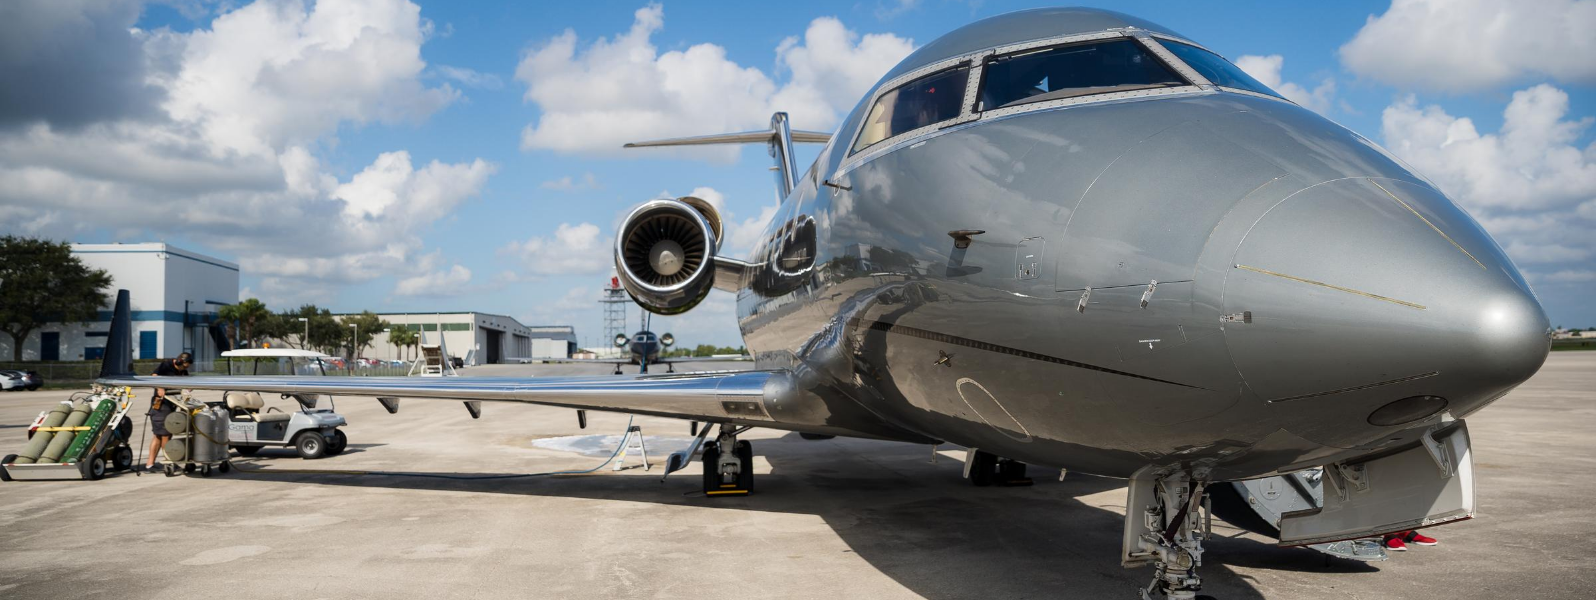 How are FBO networks and their Partners recovering from traffic losses of 80-100%? header image